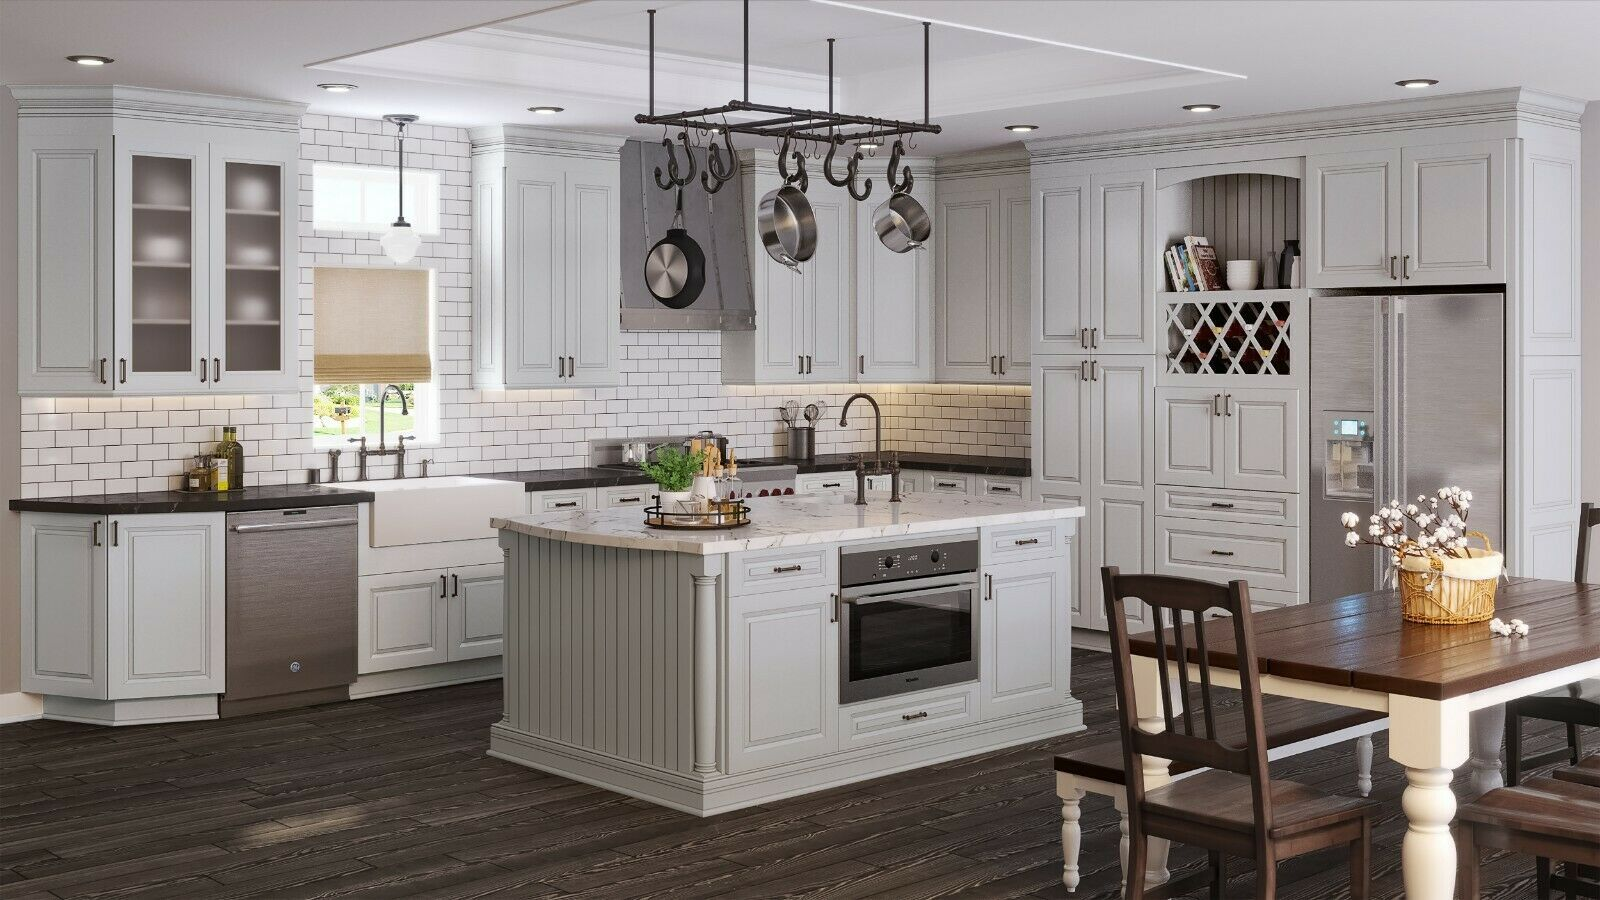 Rta All Wood 10x10 Torrance Dove Kitchen Cabinets Taupe Light Gray Raised Panel Kitchen C Grey Kitchen Cabinets Online Kitchen Cabinets Buy Kitchen Cabinets